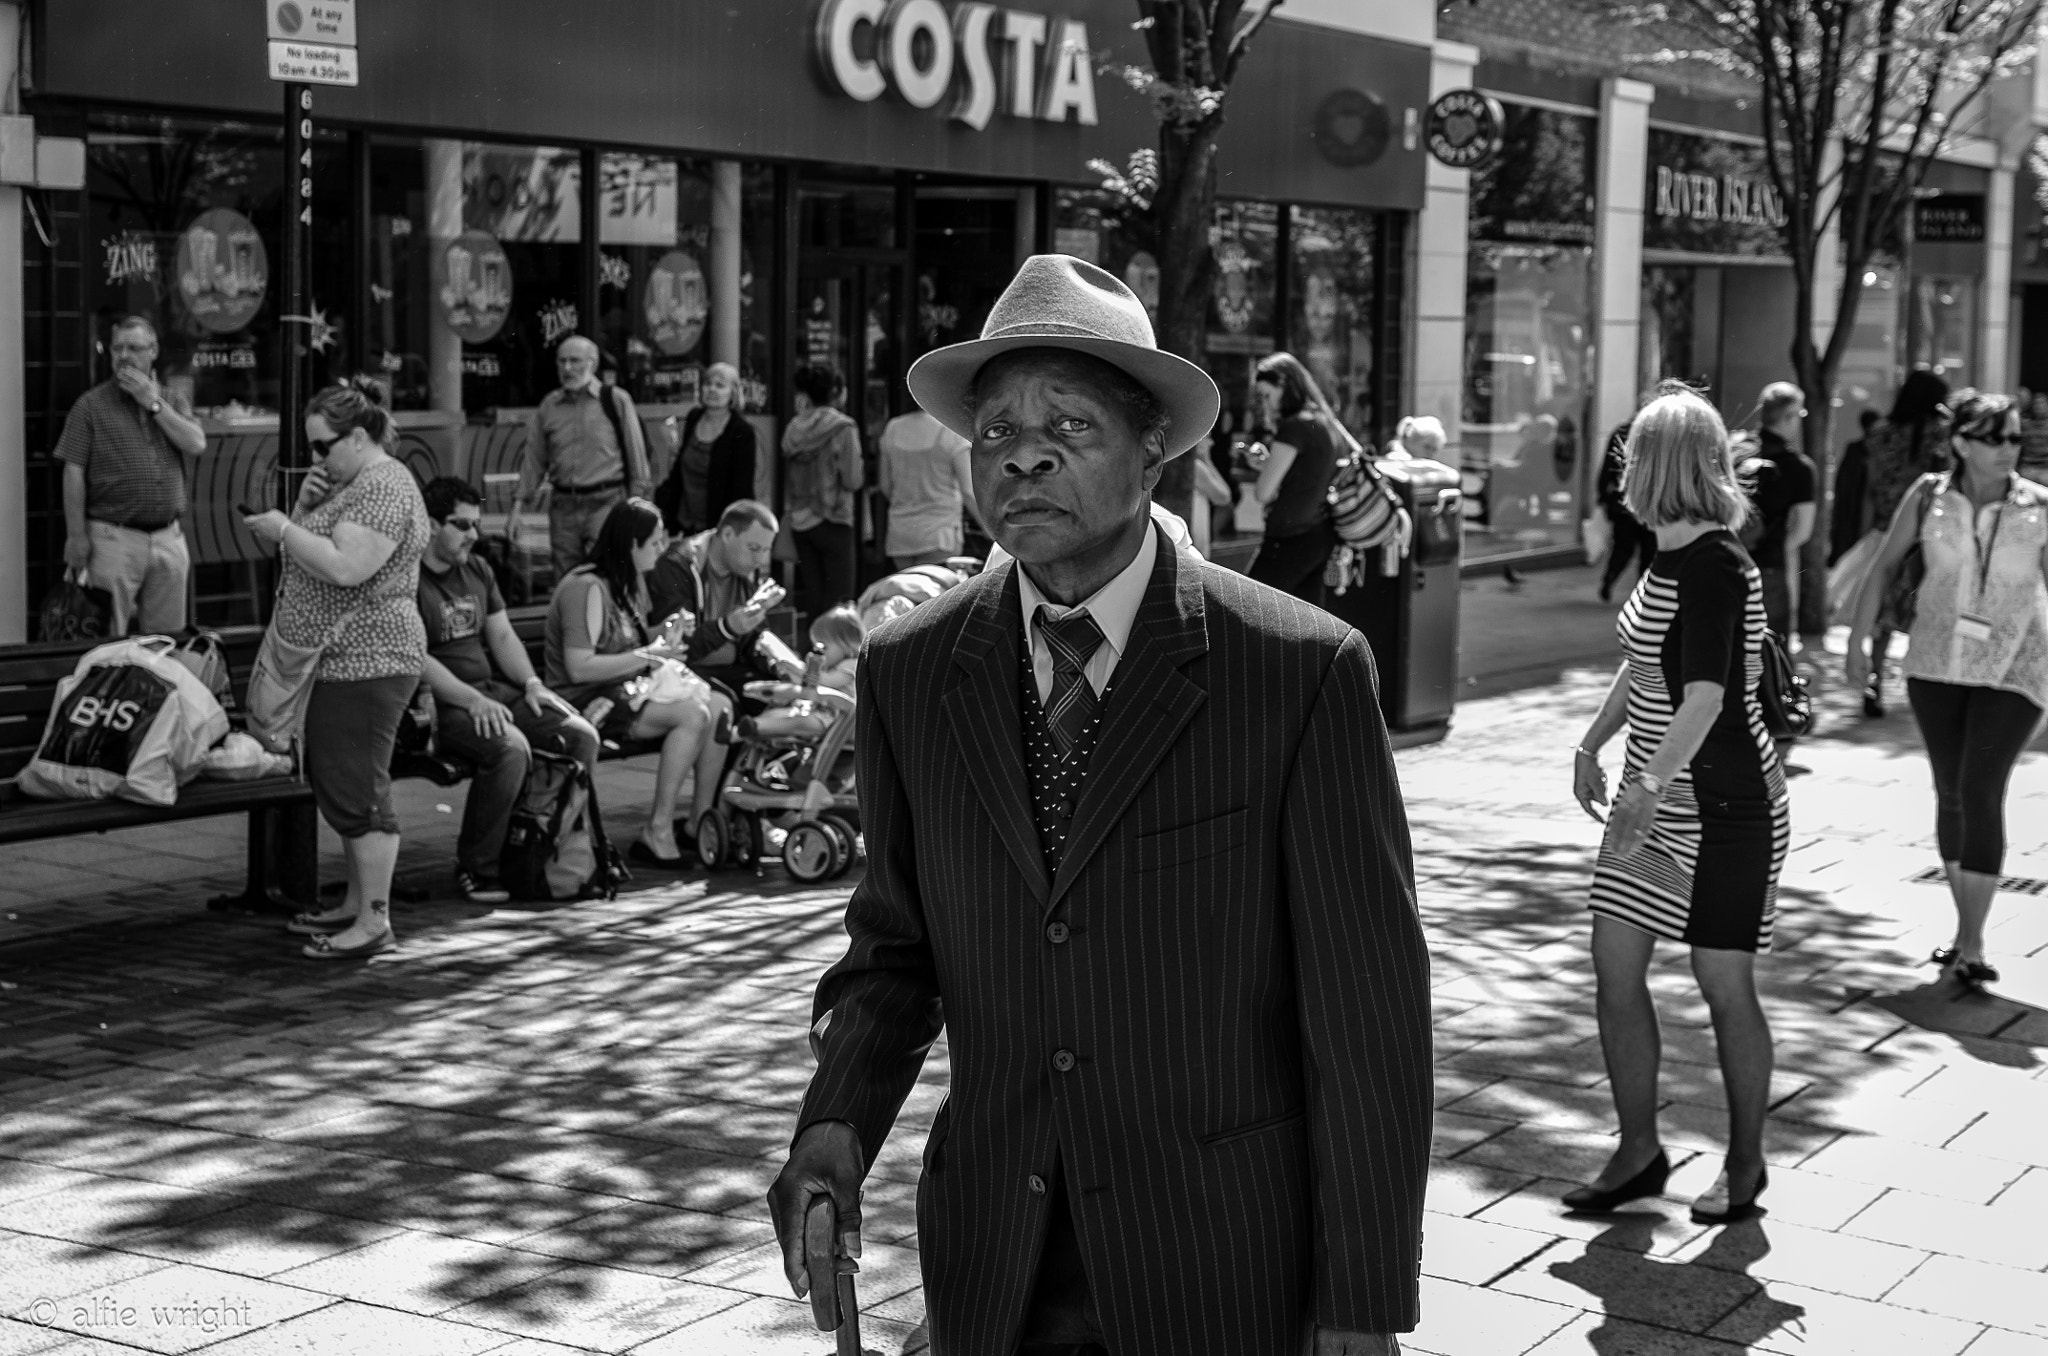 Photograph Costa Dude... by alfie wright on 500px